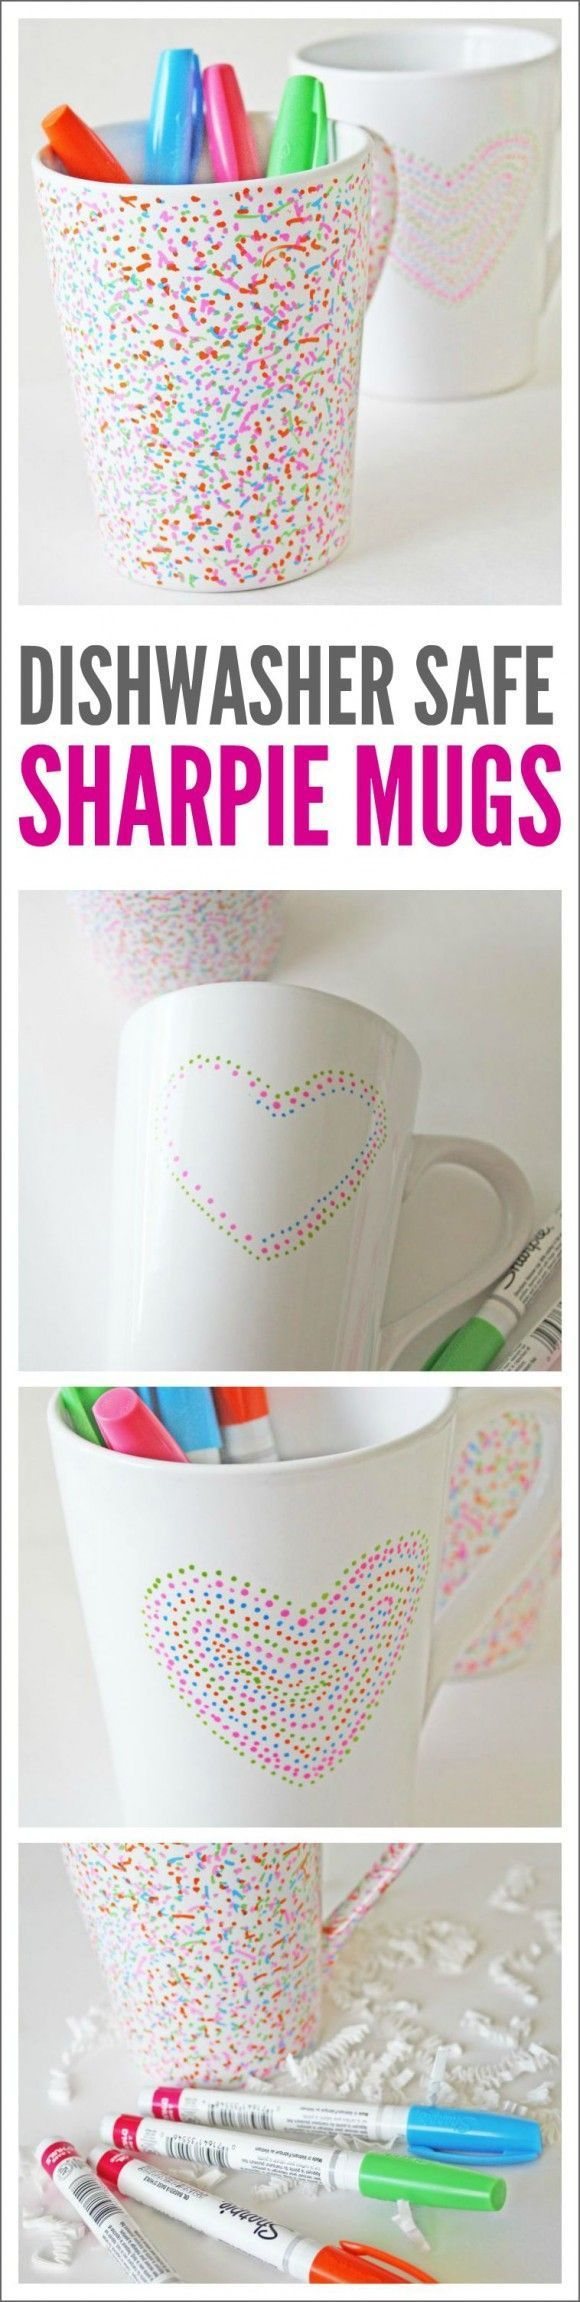 Dishwasher Safe Sharpie Mug DIY. These make great holiday gifts, birthday gifts, teacher gifts, or party favors! After you bake them in the oven, they are perfectly safe to use with food and won't wash off in the dishwasher. See more crafts, party ideas, and DIYs at http://CatchMyParty.com.